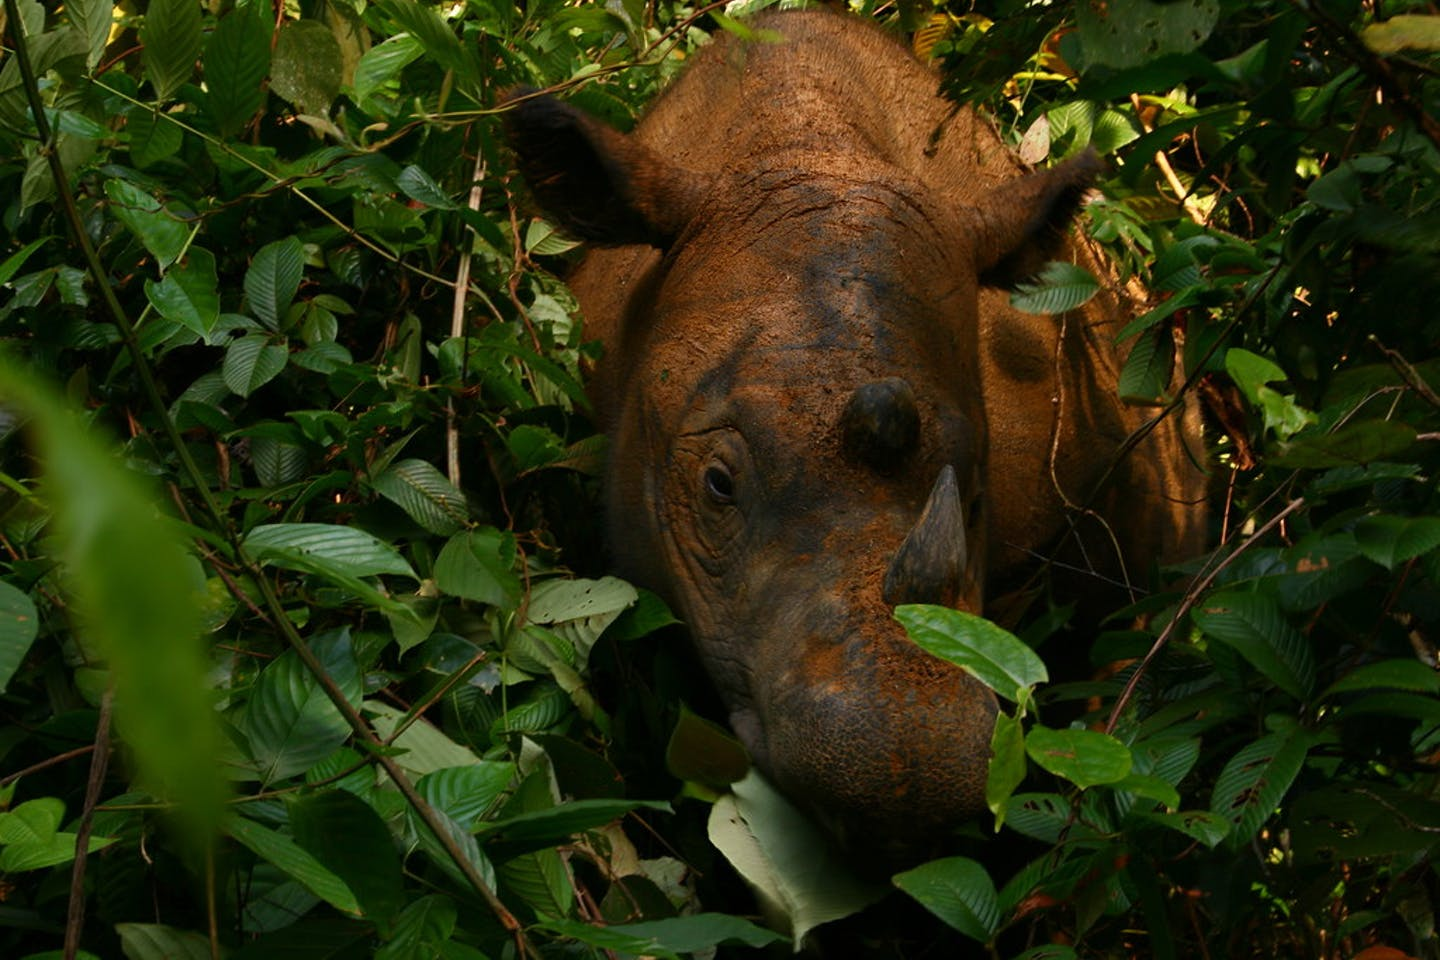 Sumatran rhino at the Way Kambas sanctuary in southern Sumatra, Indonesia